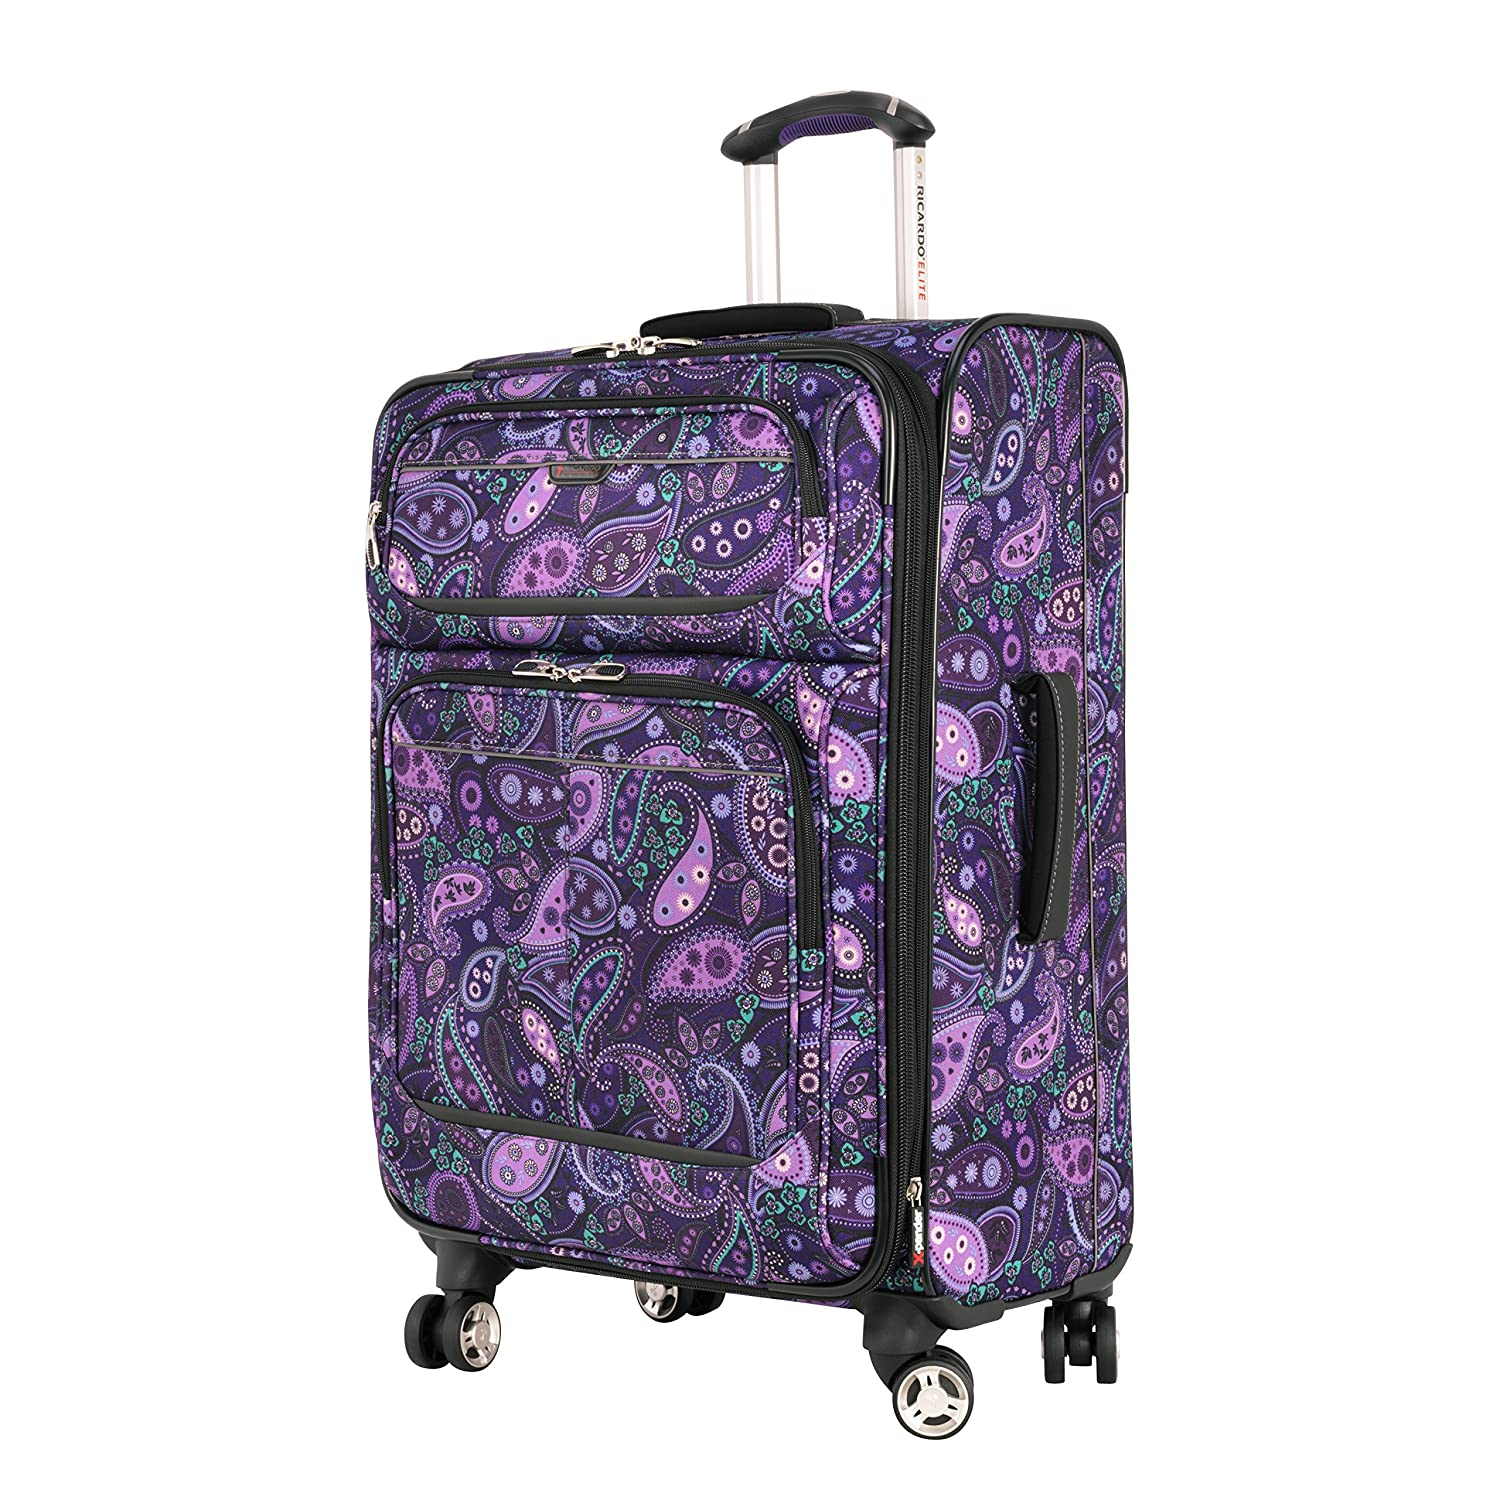 Ricardo Beverly Hills Expandable Luggage set Black Friday Deal 2020